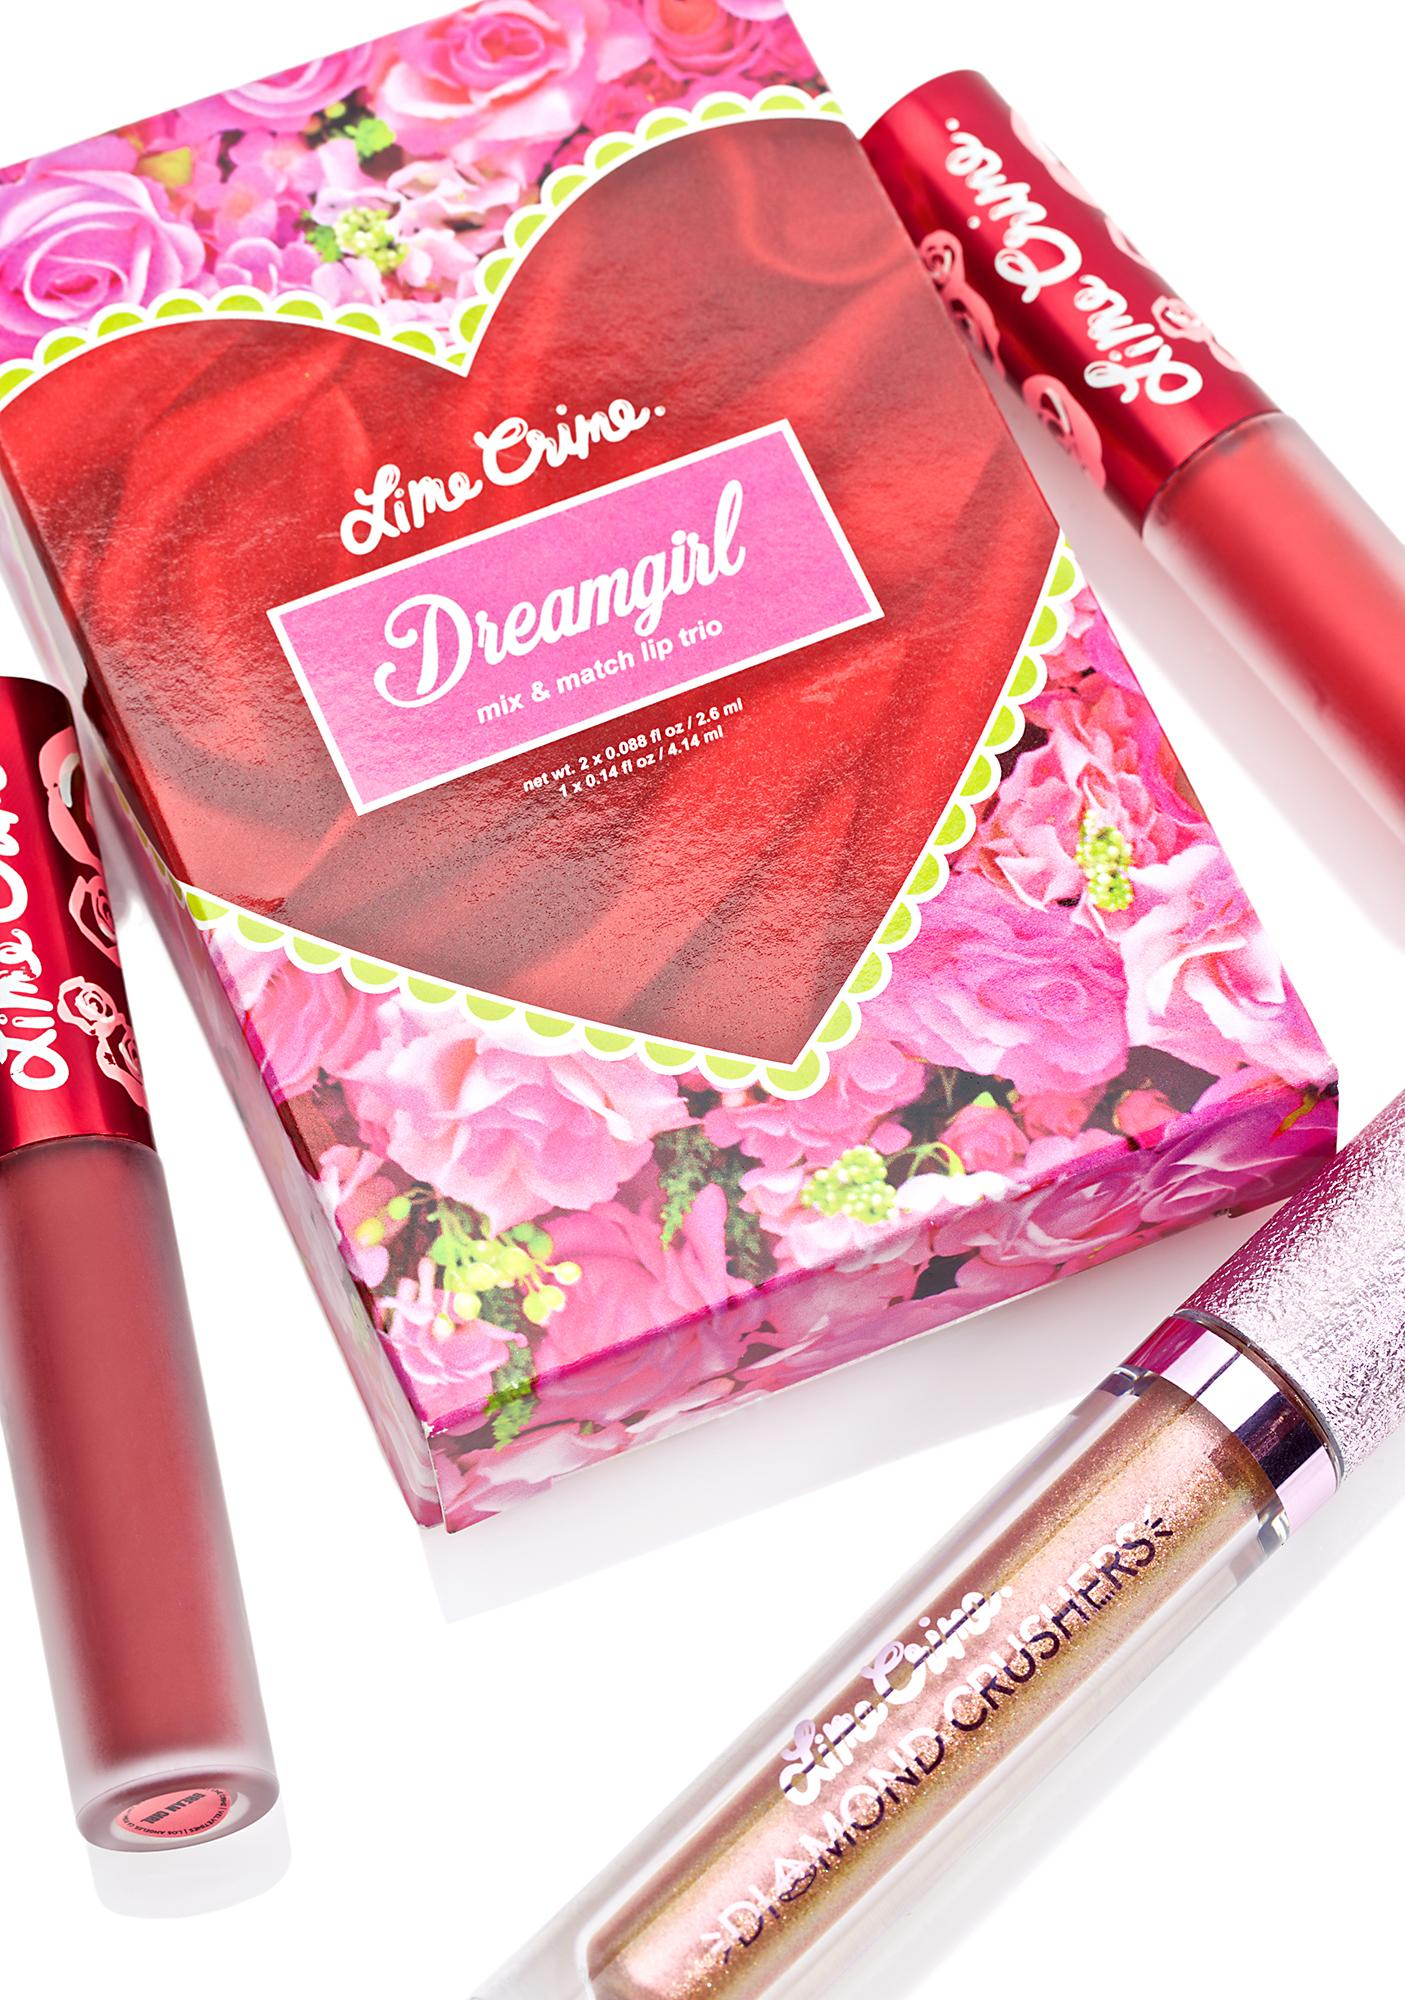 Lime Crime Dream Girl Trio Set